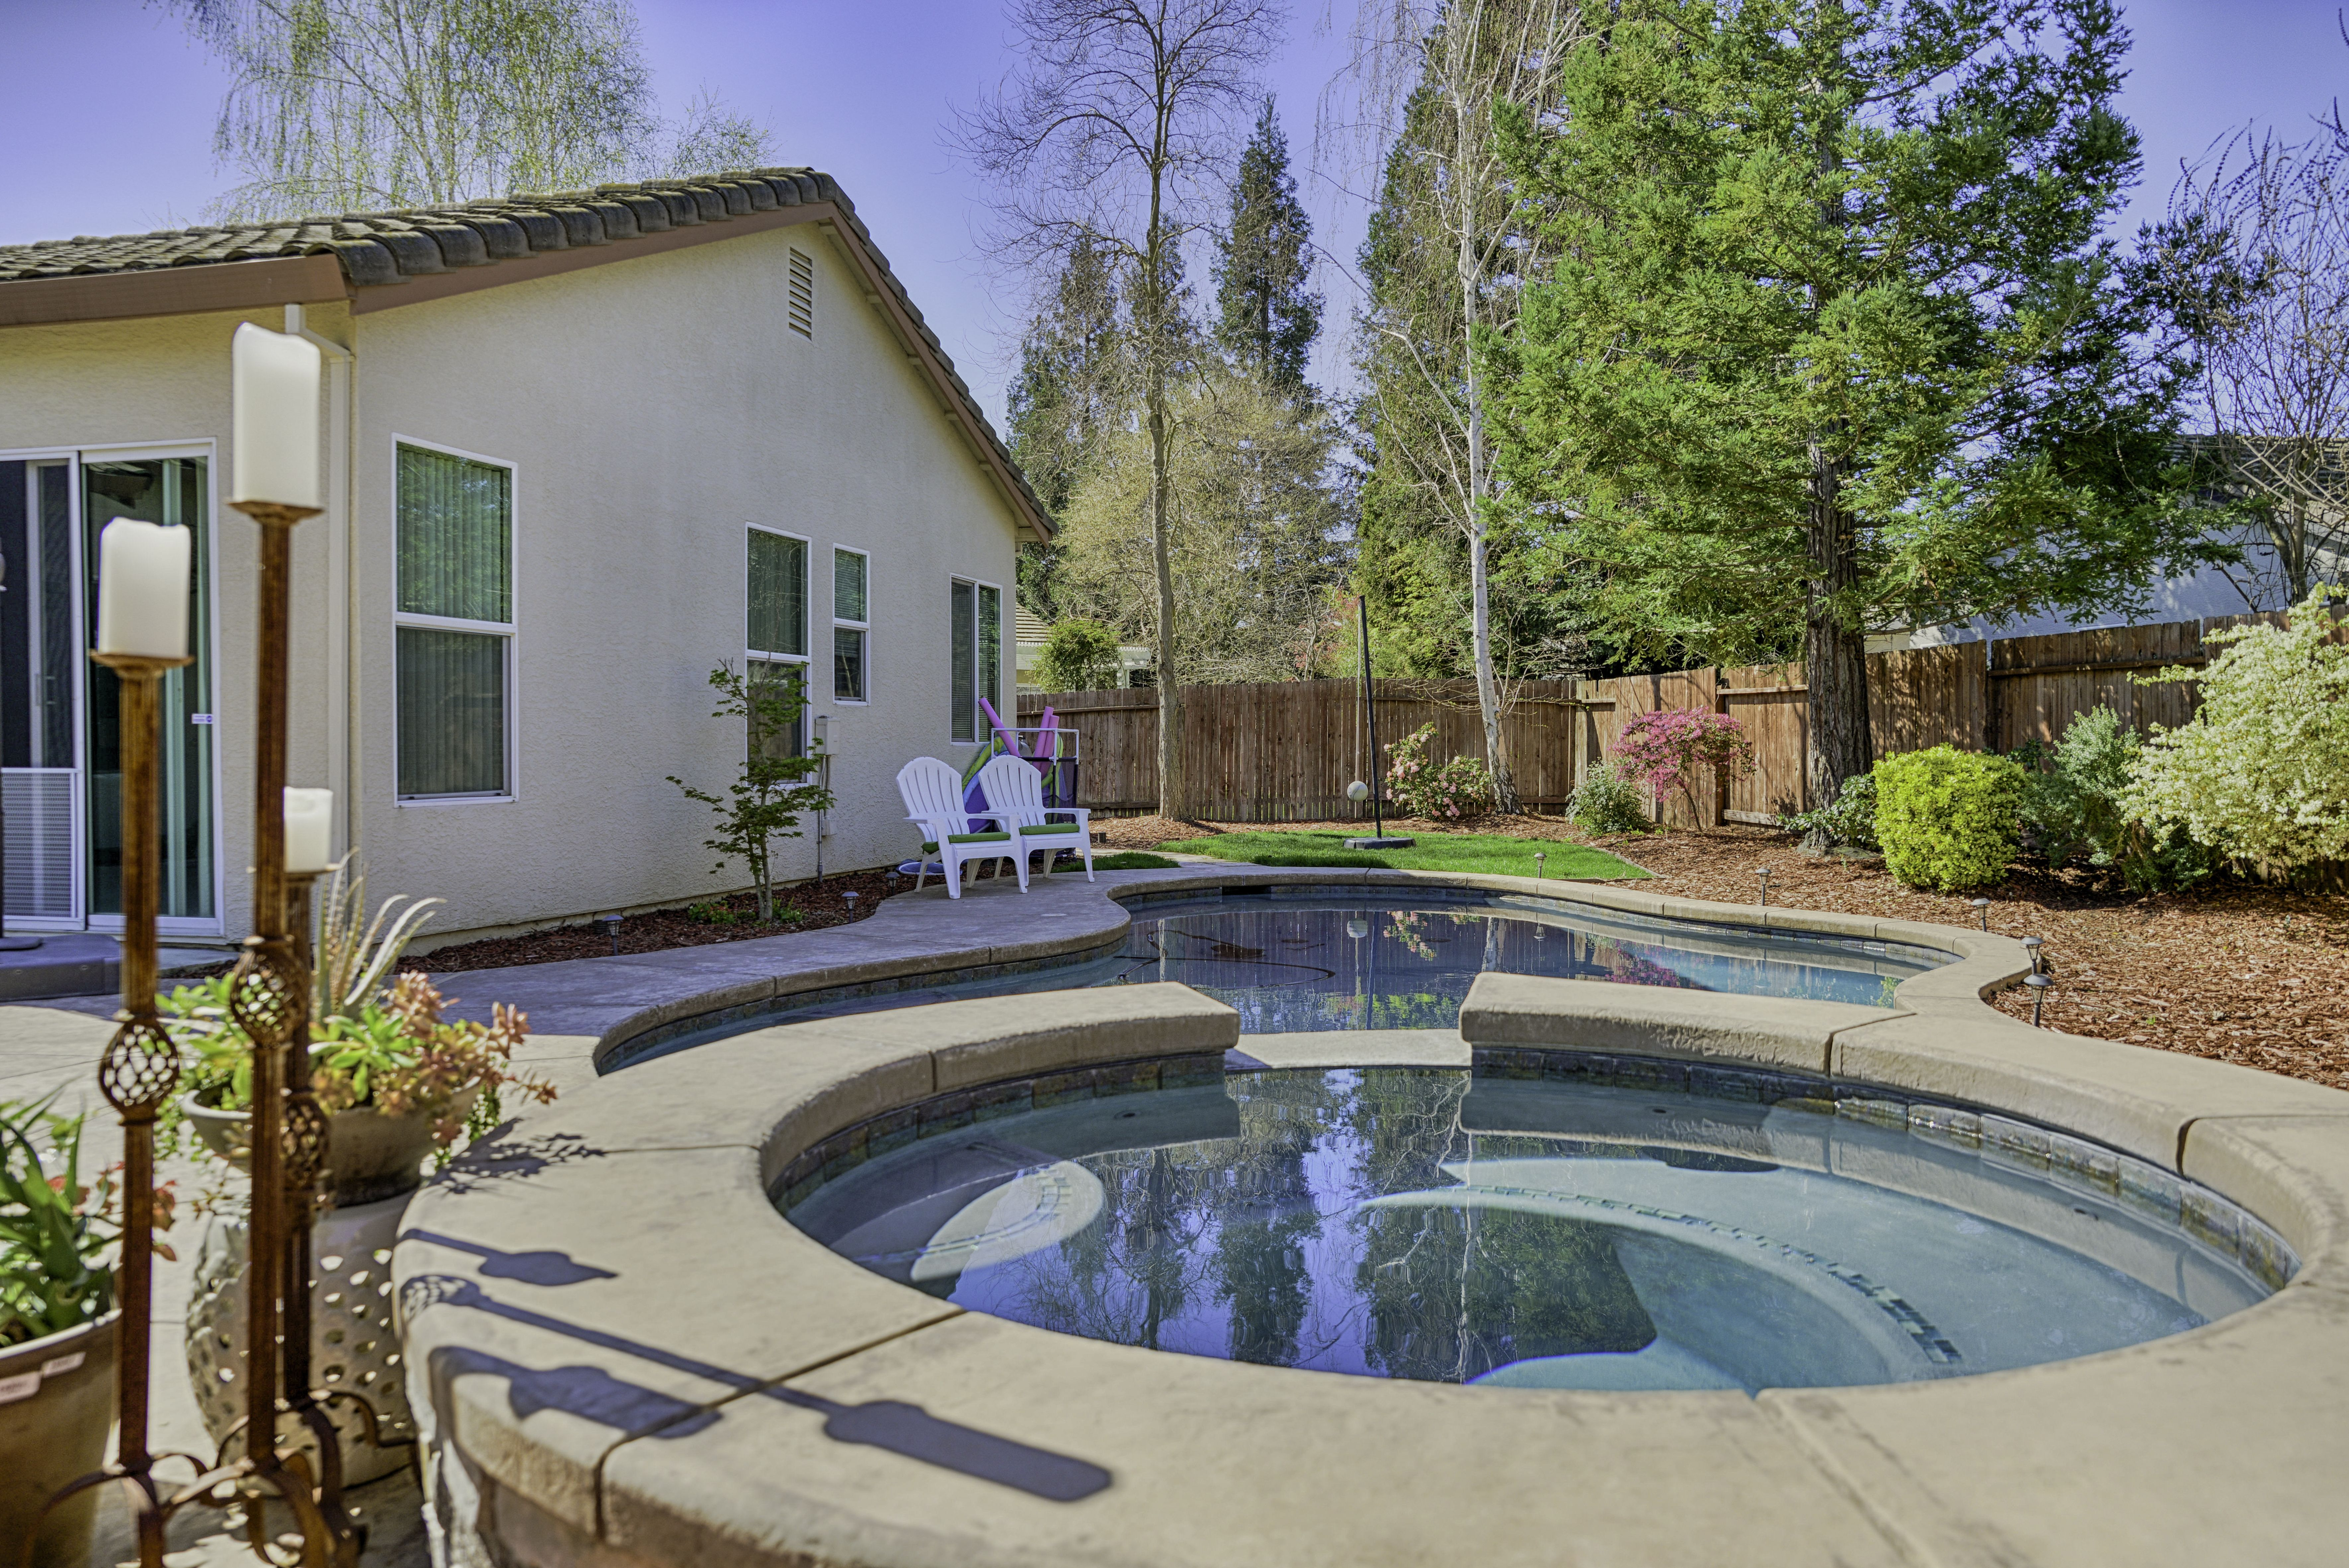 Backyard Landscaping Elk Grove Ca : Landscaping including a pool and spa with waterfall landscape